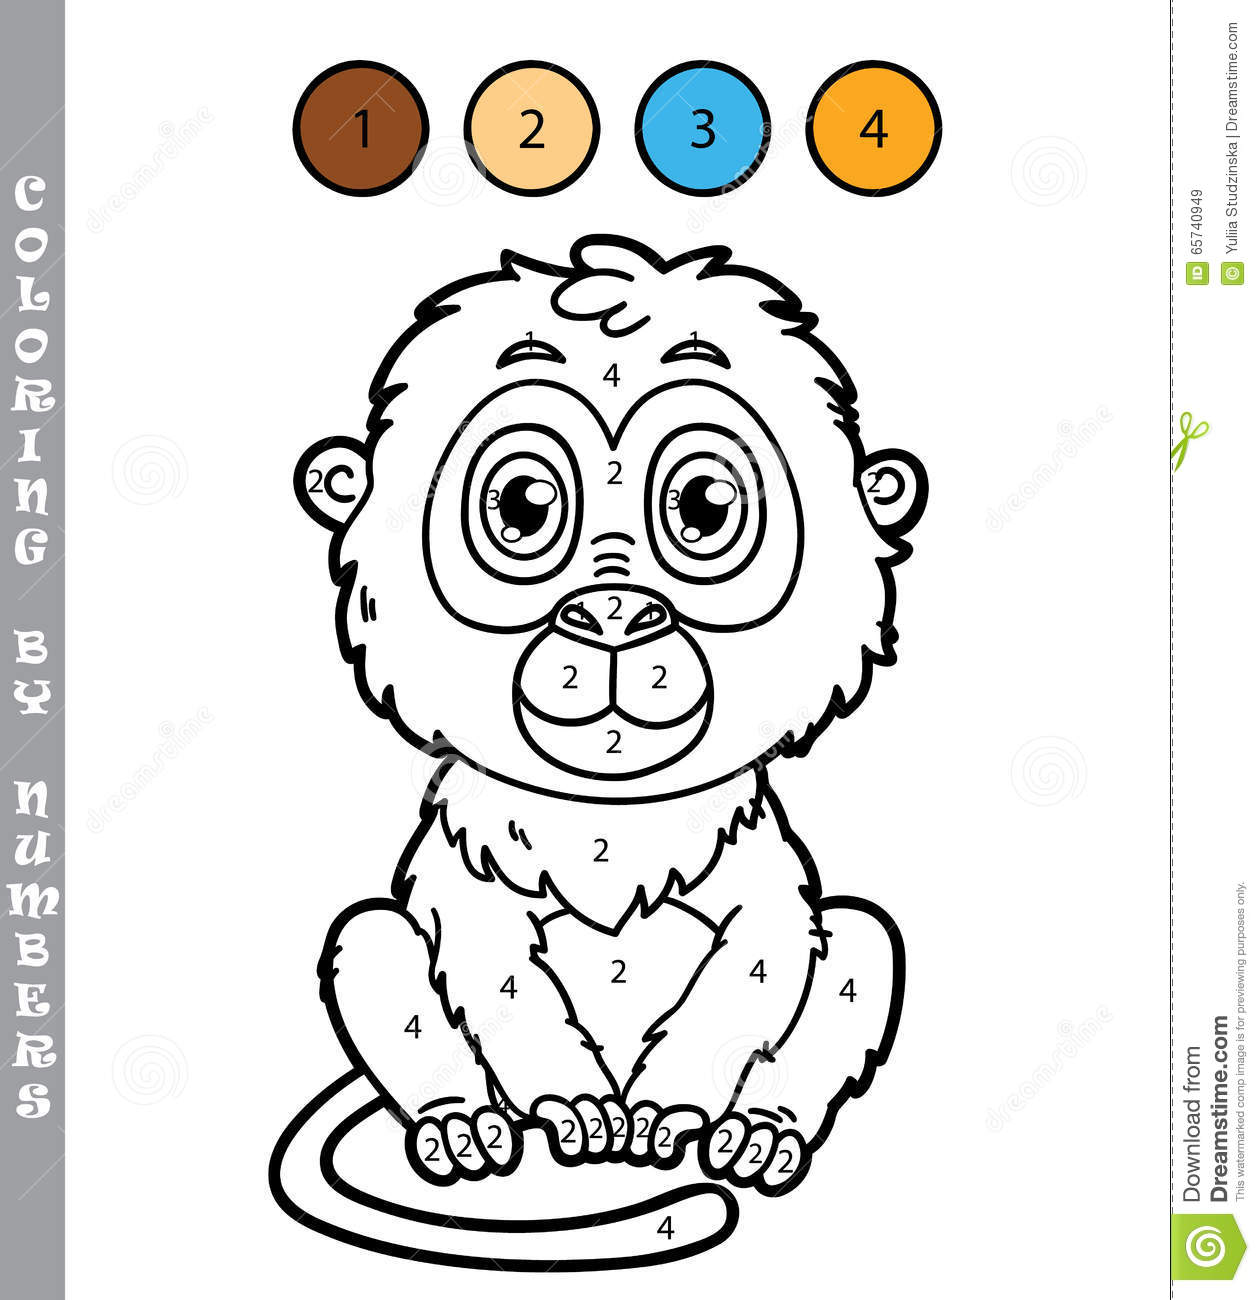 Funny Monkey Coloring Game. Stock Vector - Illustration of character ...